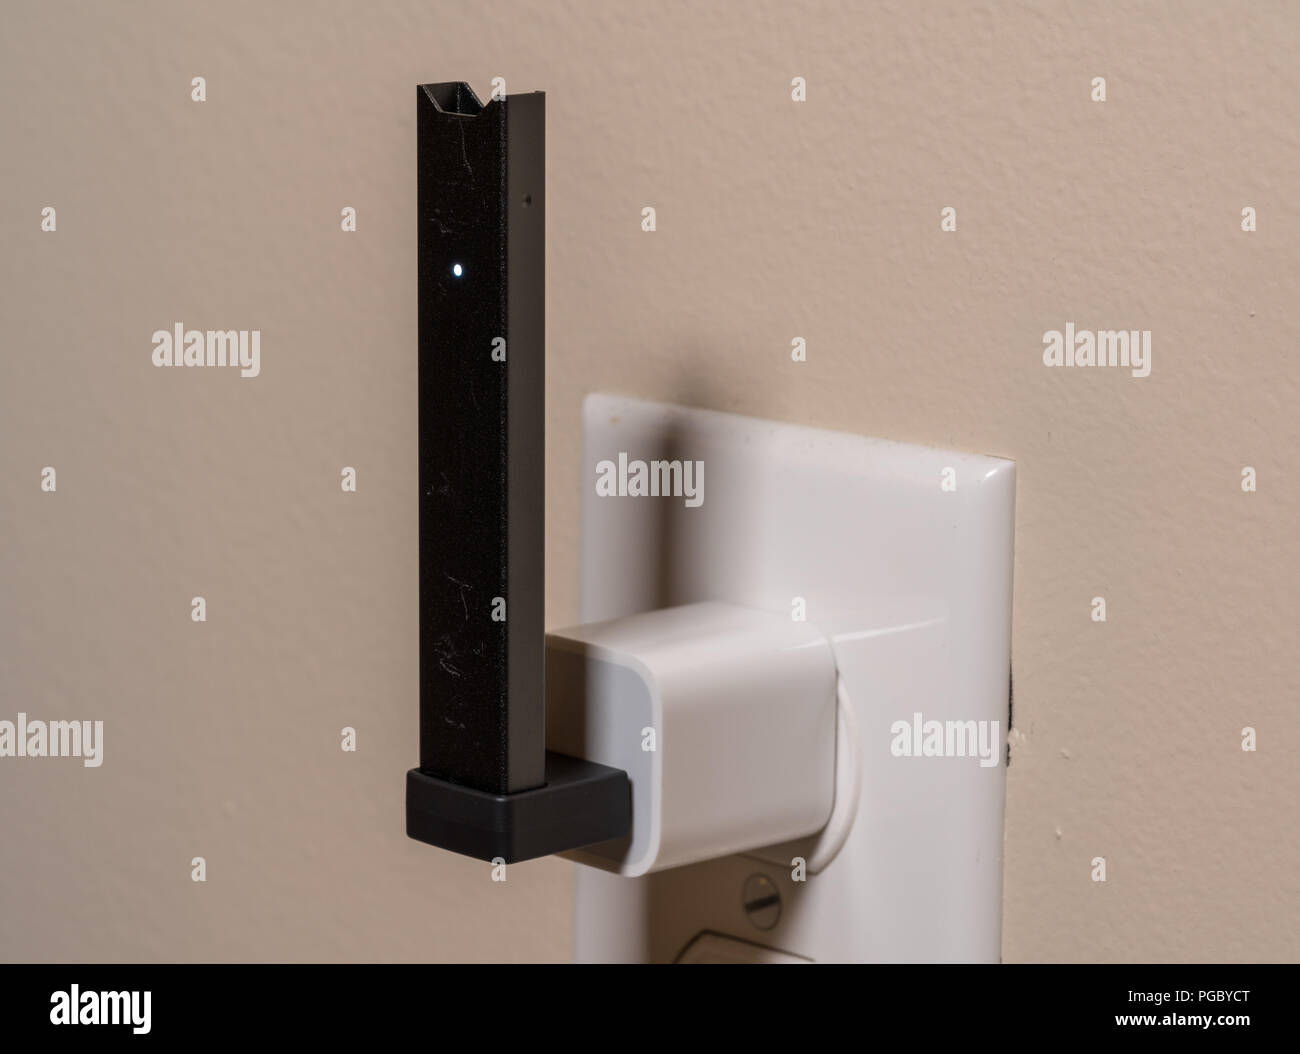 Juul Nicotine Vapor Dispenser Charging In Usb Charger Stock Photo Alamy